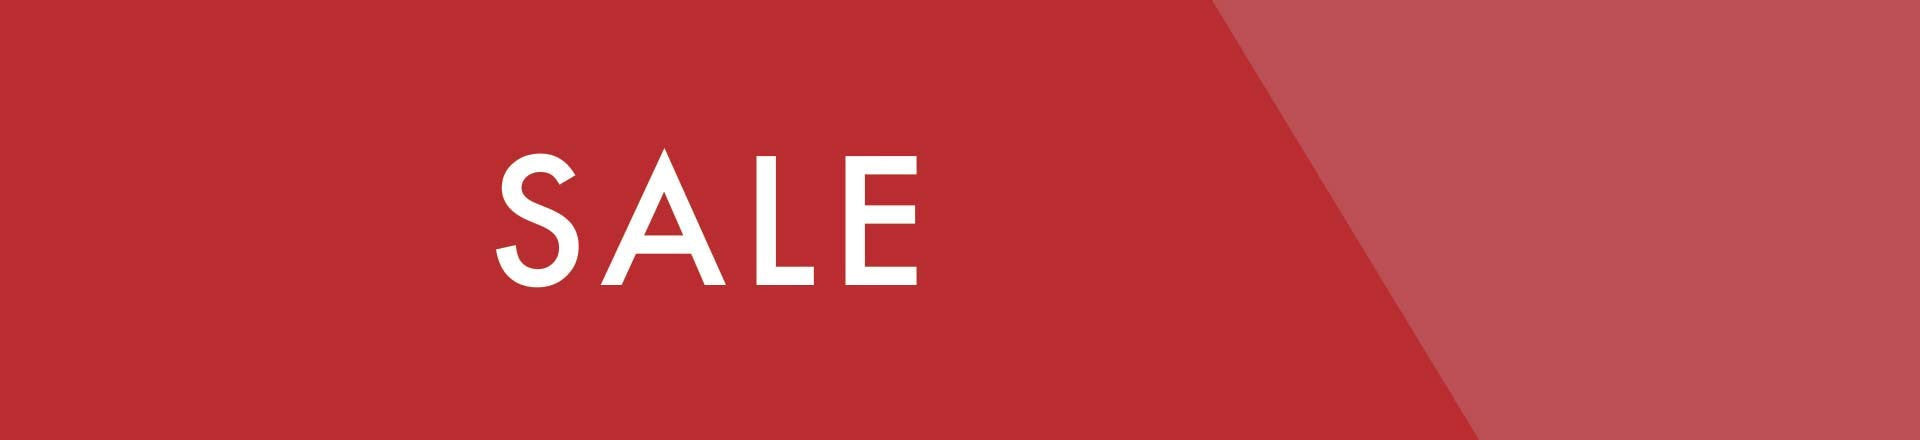 Shop the Summer Sale - up to 60% off all summer styles, while stocks last